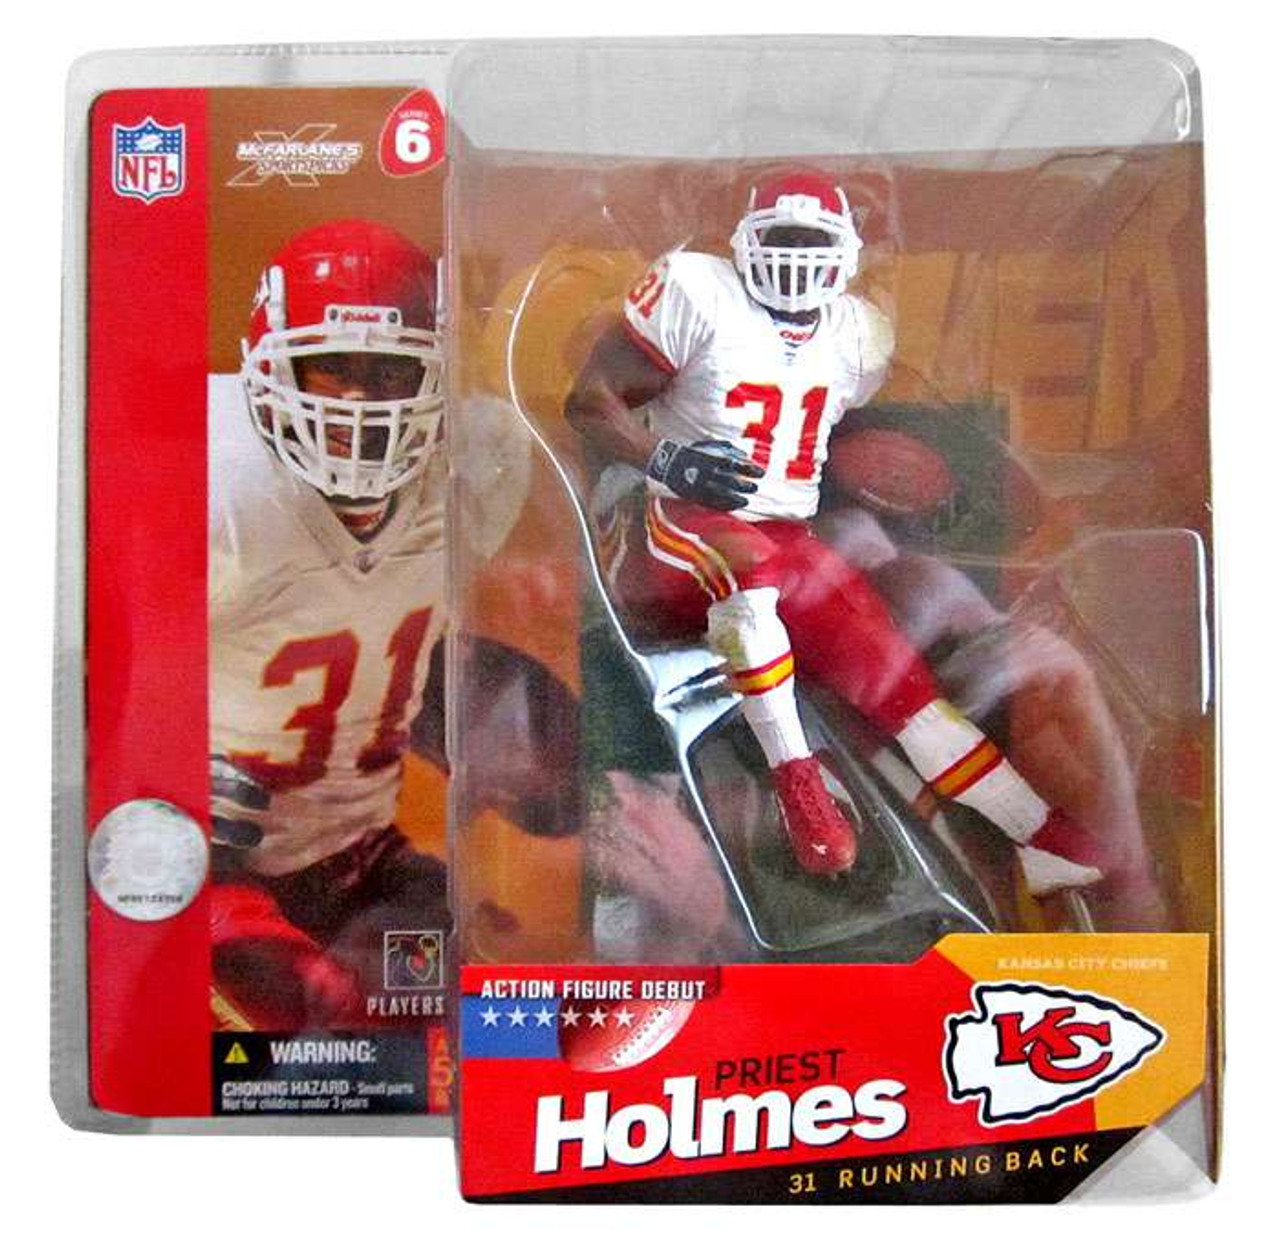 2629713d460 McFarlane Toys NFL Kansas City Chiefs Sports Picks Series 6 Priest Holmes  Action Figure White Jersey - ToyWiz